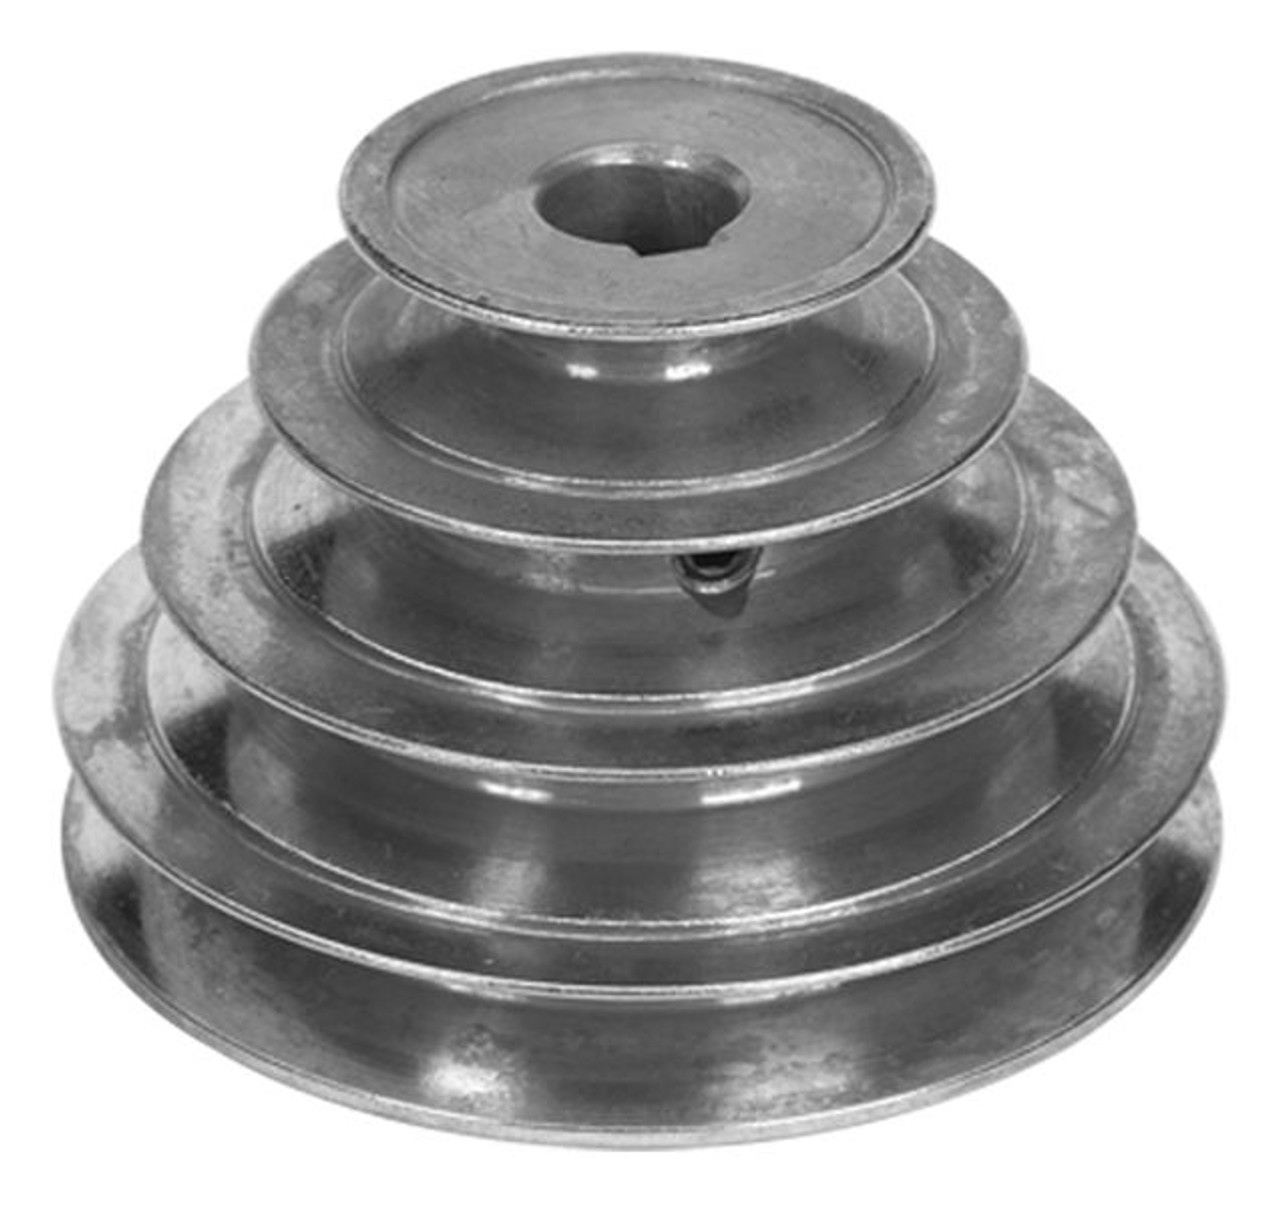 5 Diameter 4 Step Pulley 1//2-5//8 Fixed Bore Die Cast by Congress